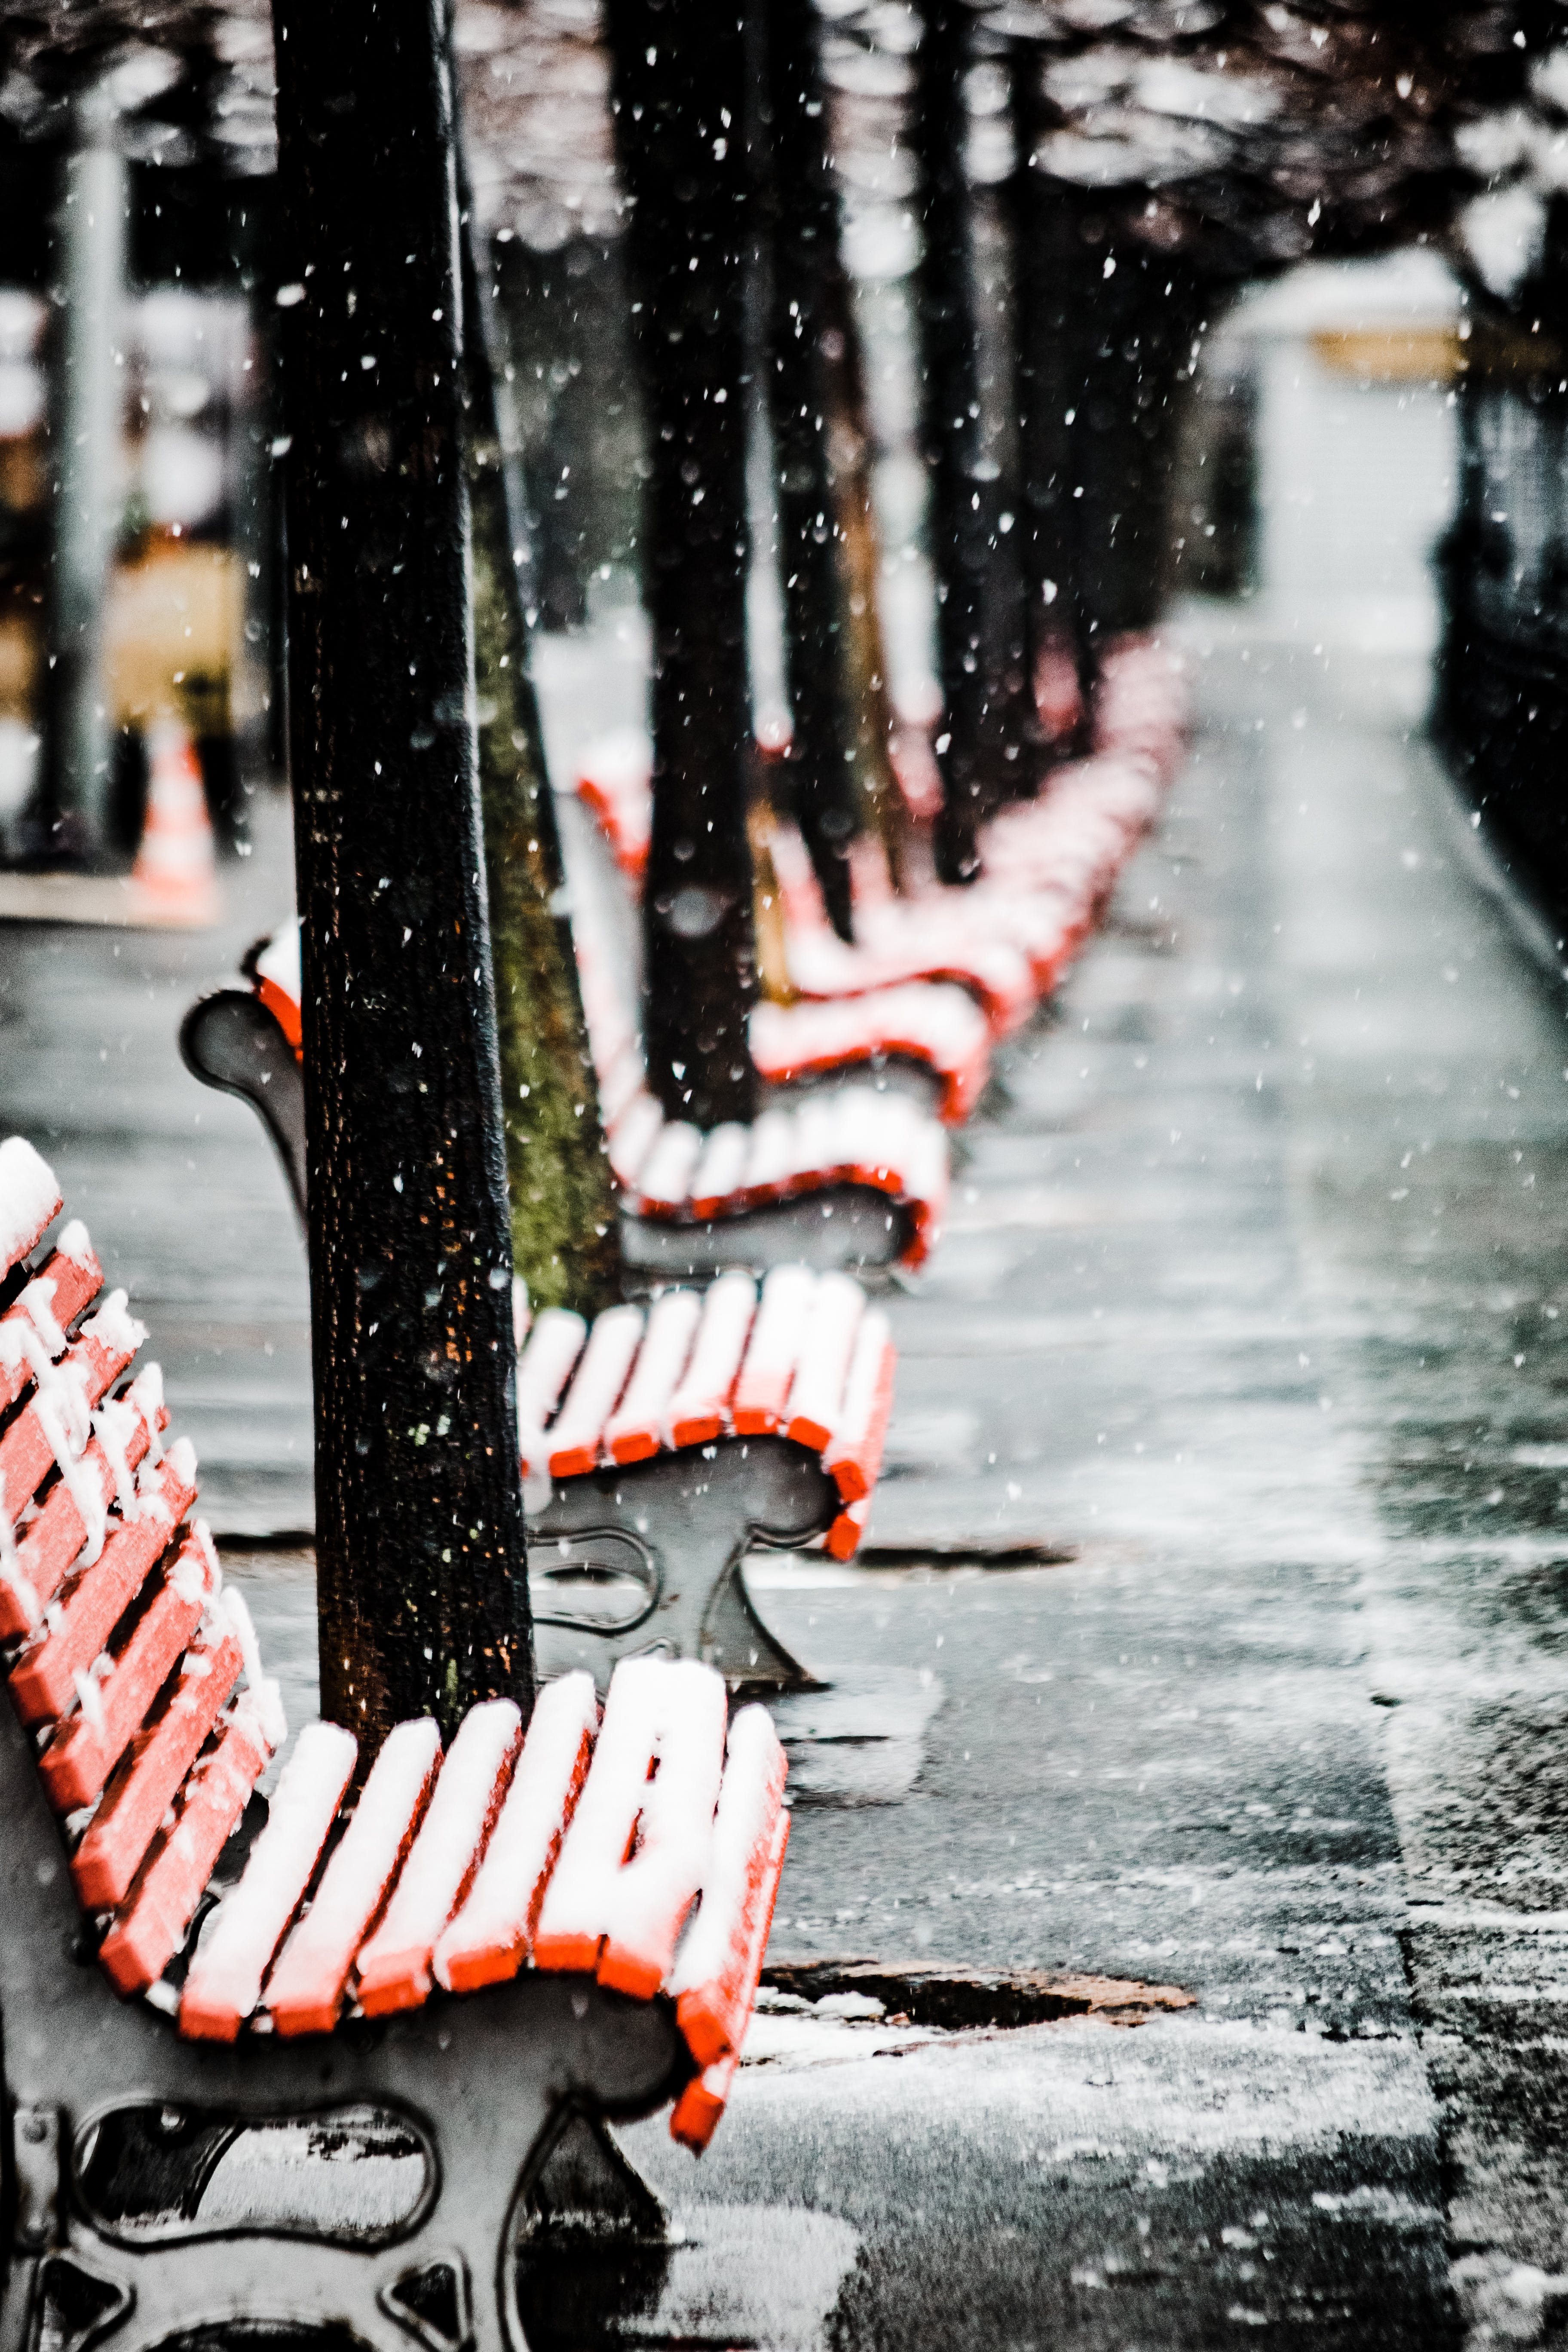 Chairs Covered in Snow